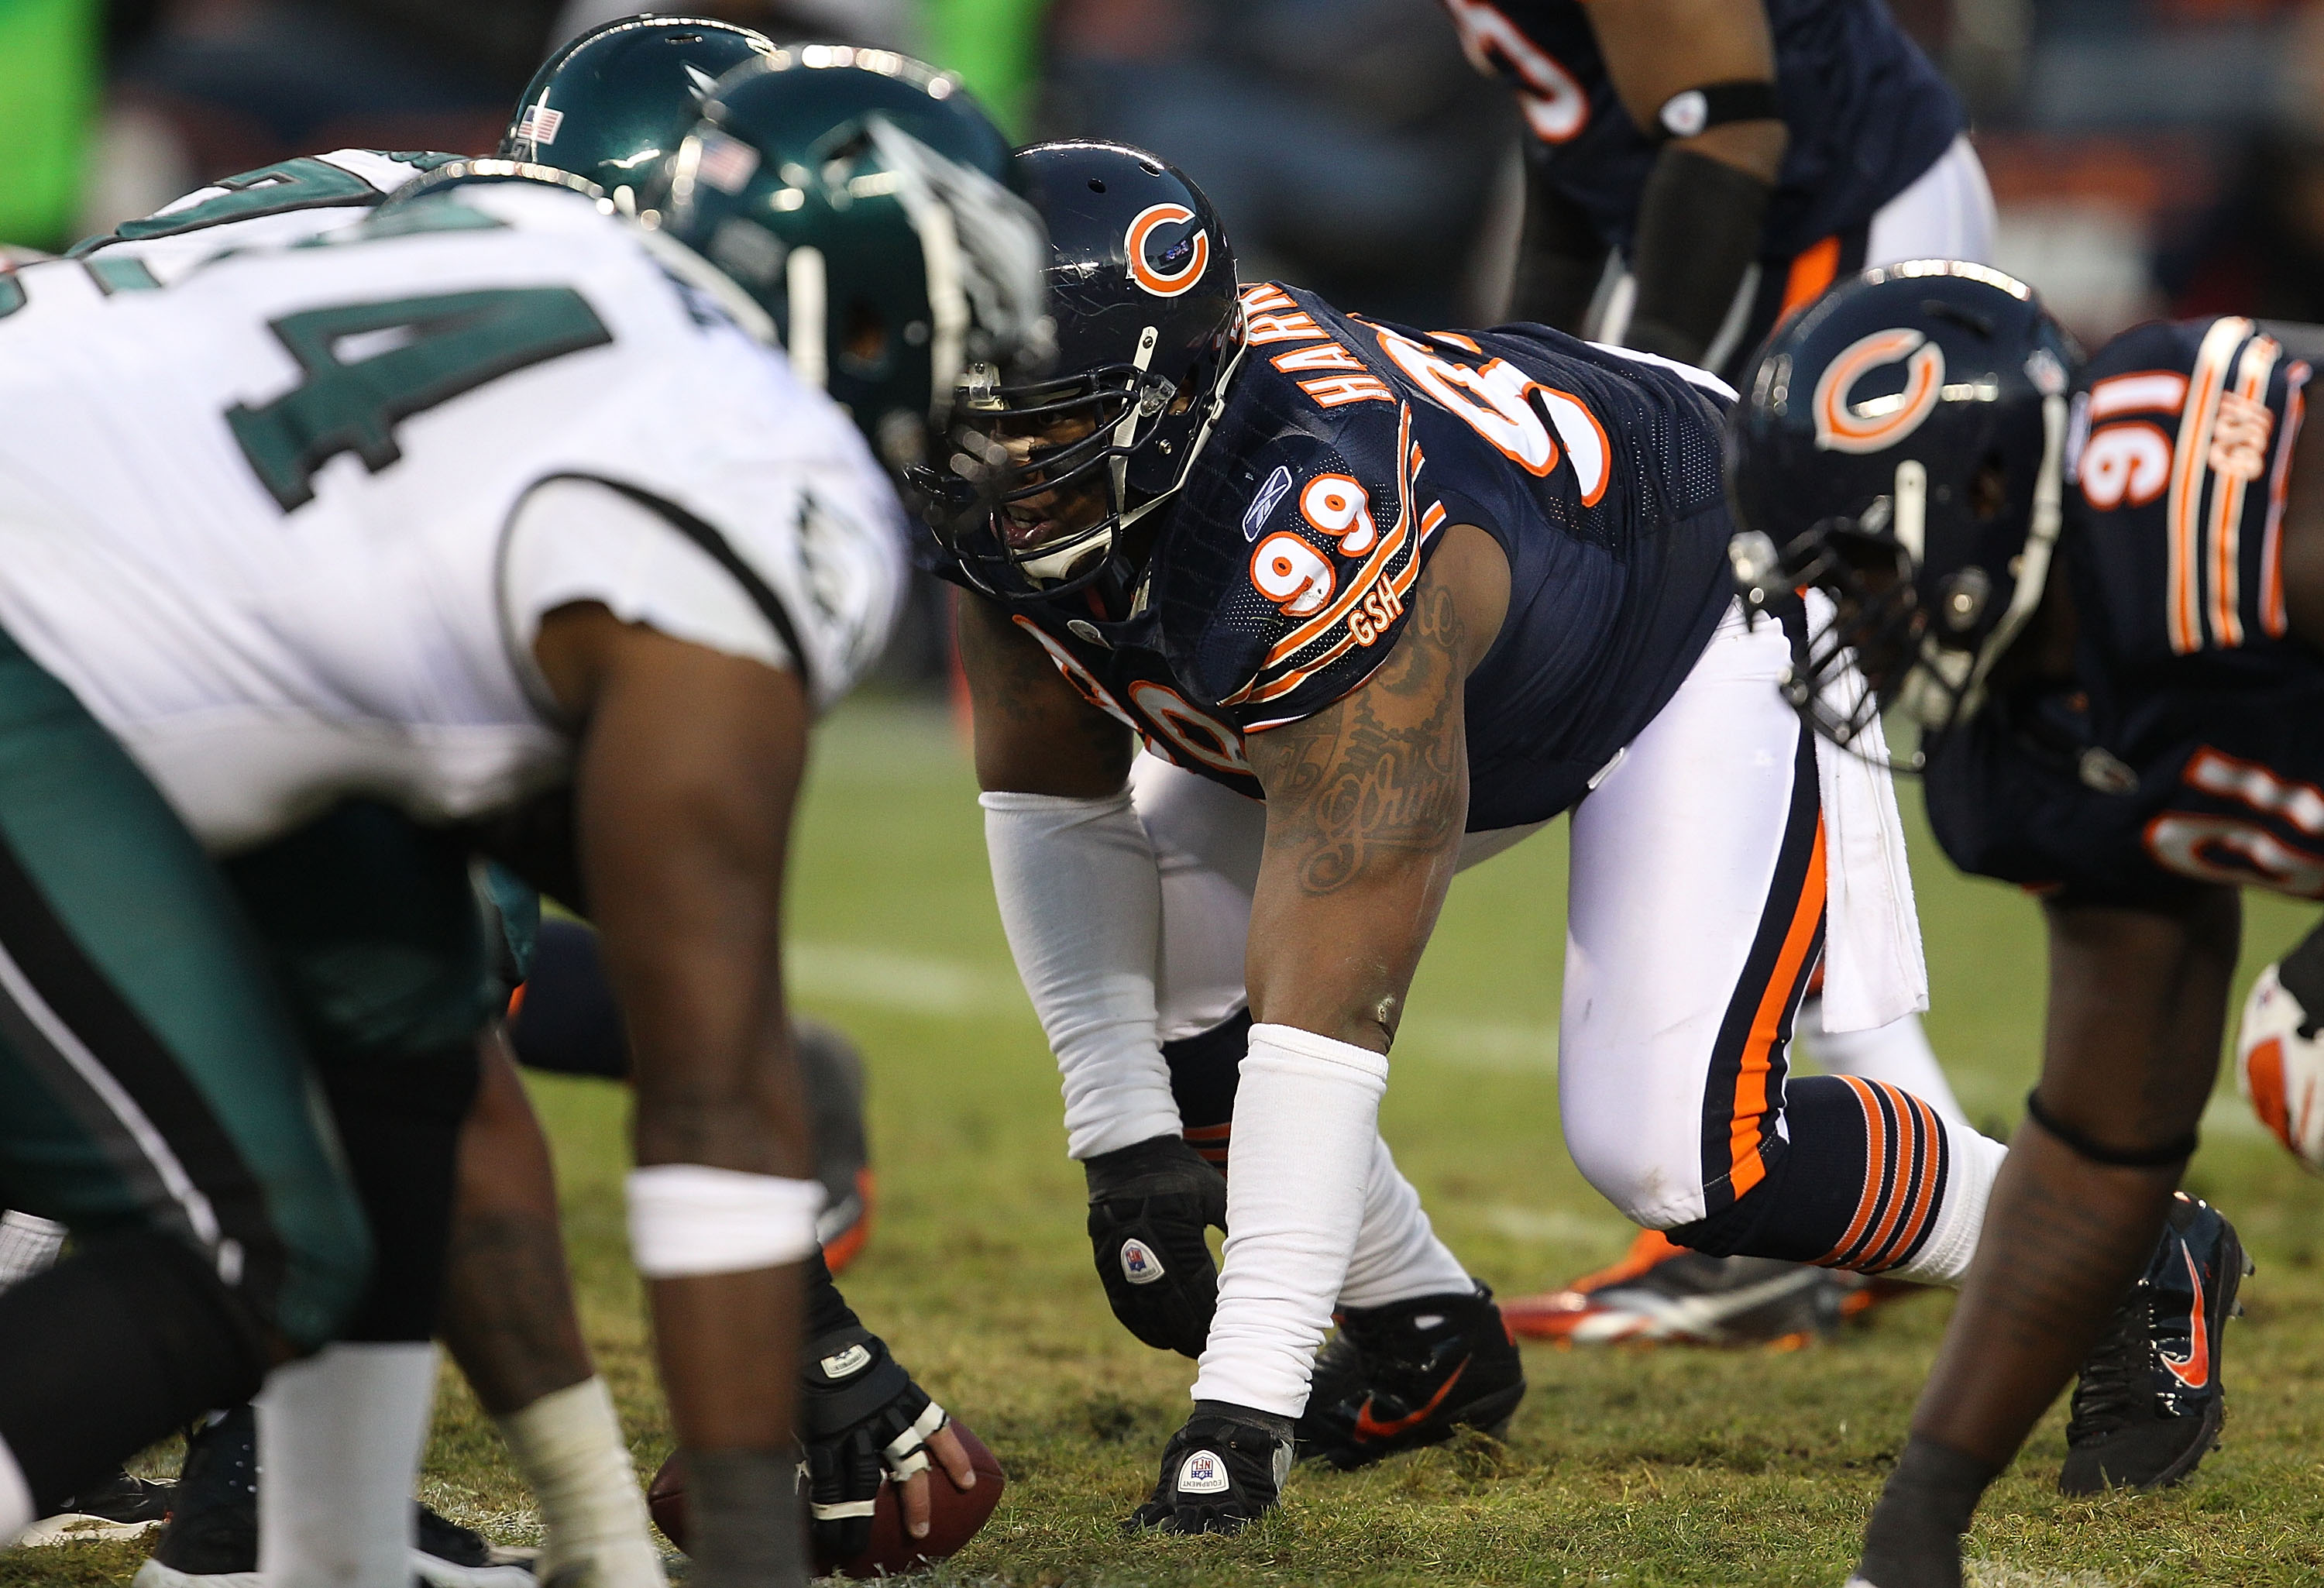 CHICAGO - NOVEMBER 28: Marcus Harrison #99 of the Chicago Bears prepares to rush against the Philadelphia Eagles at Soldier Field on November 28, 2010 in Chicago, Illinois. The Bears defeated the Eagles 31-26. (Photo by Jonathan Daniel/Getty Images)